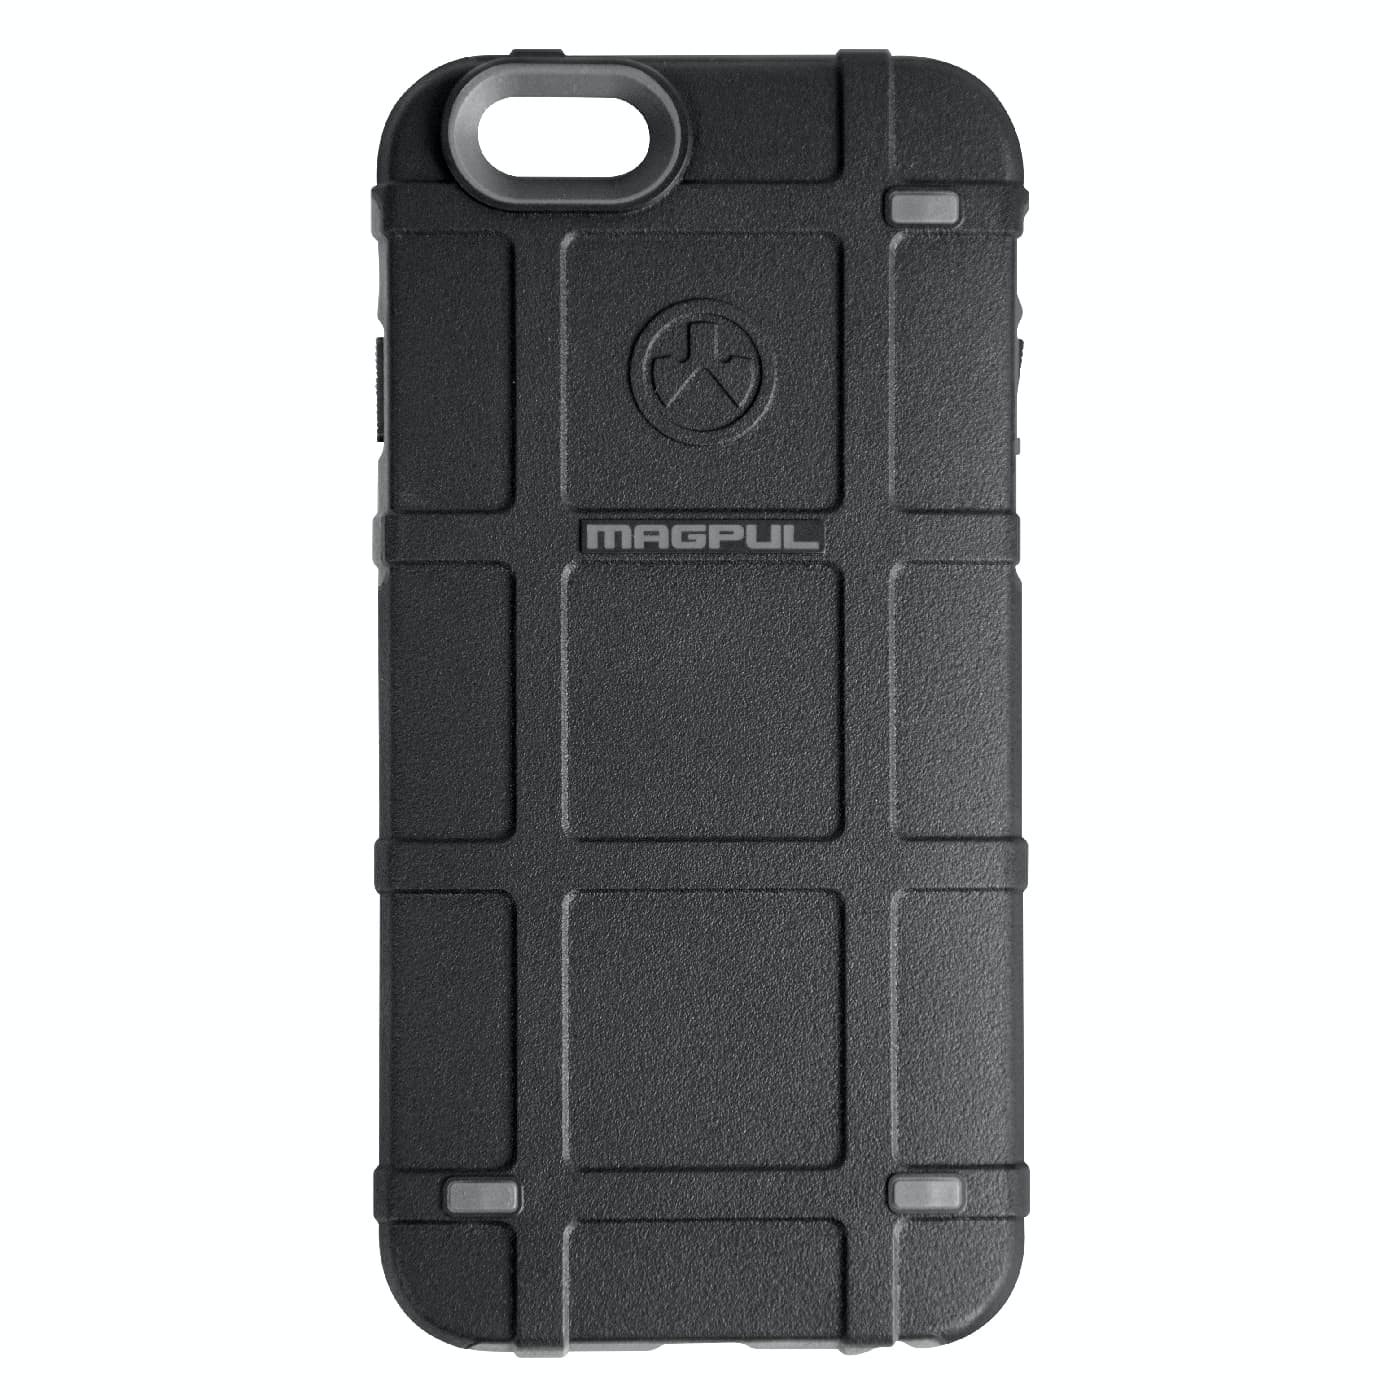 Q9m5sbtopx magpul bump case iphone 6 6s 0 original